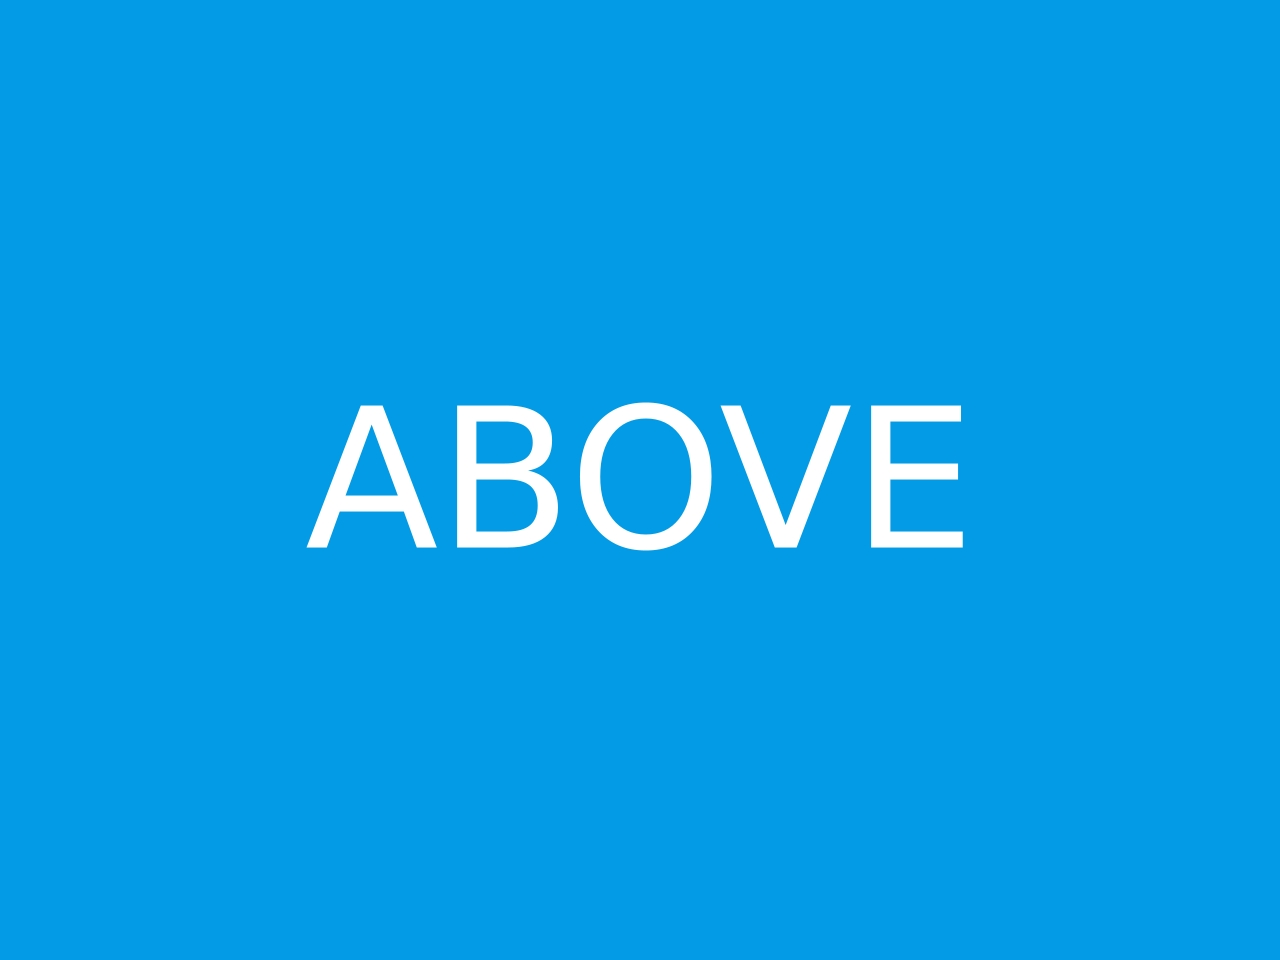 How to pronounce above in English  JustPronounce